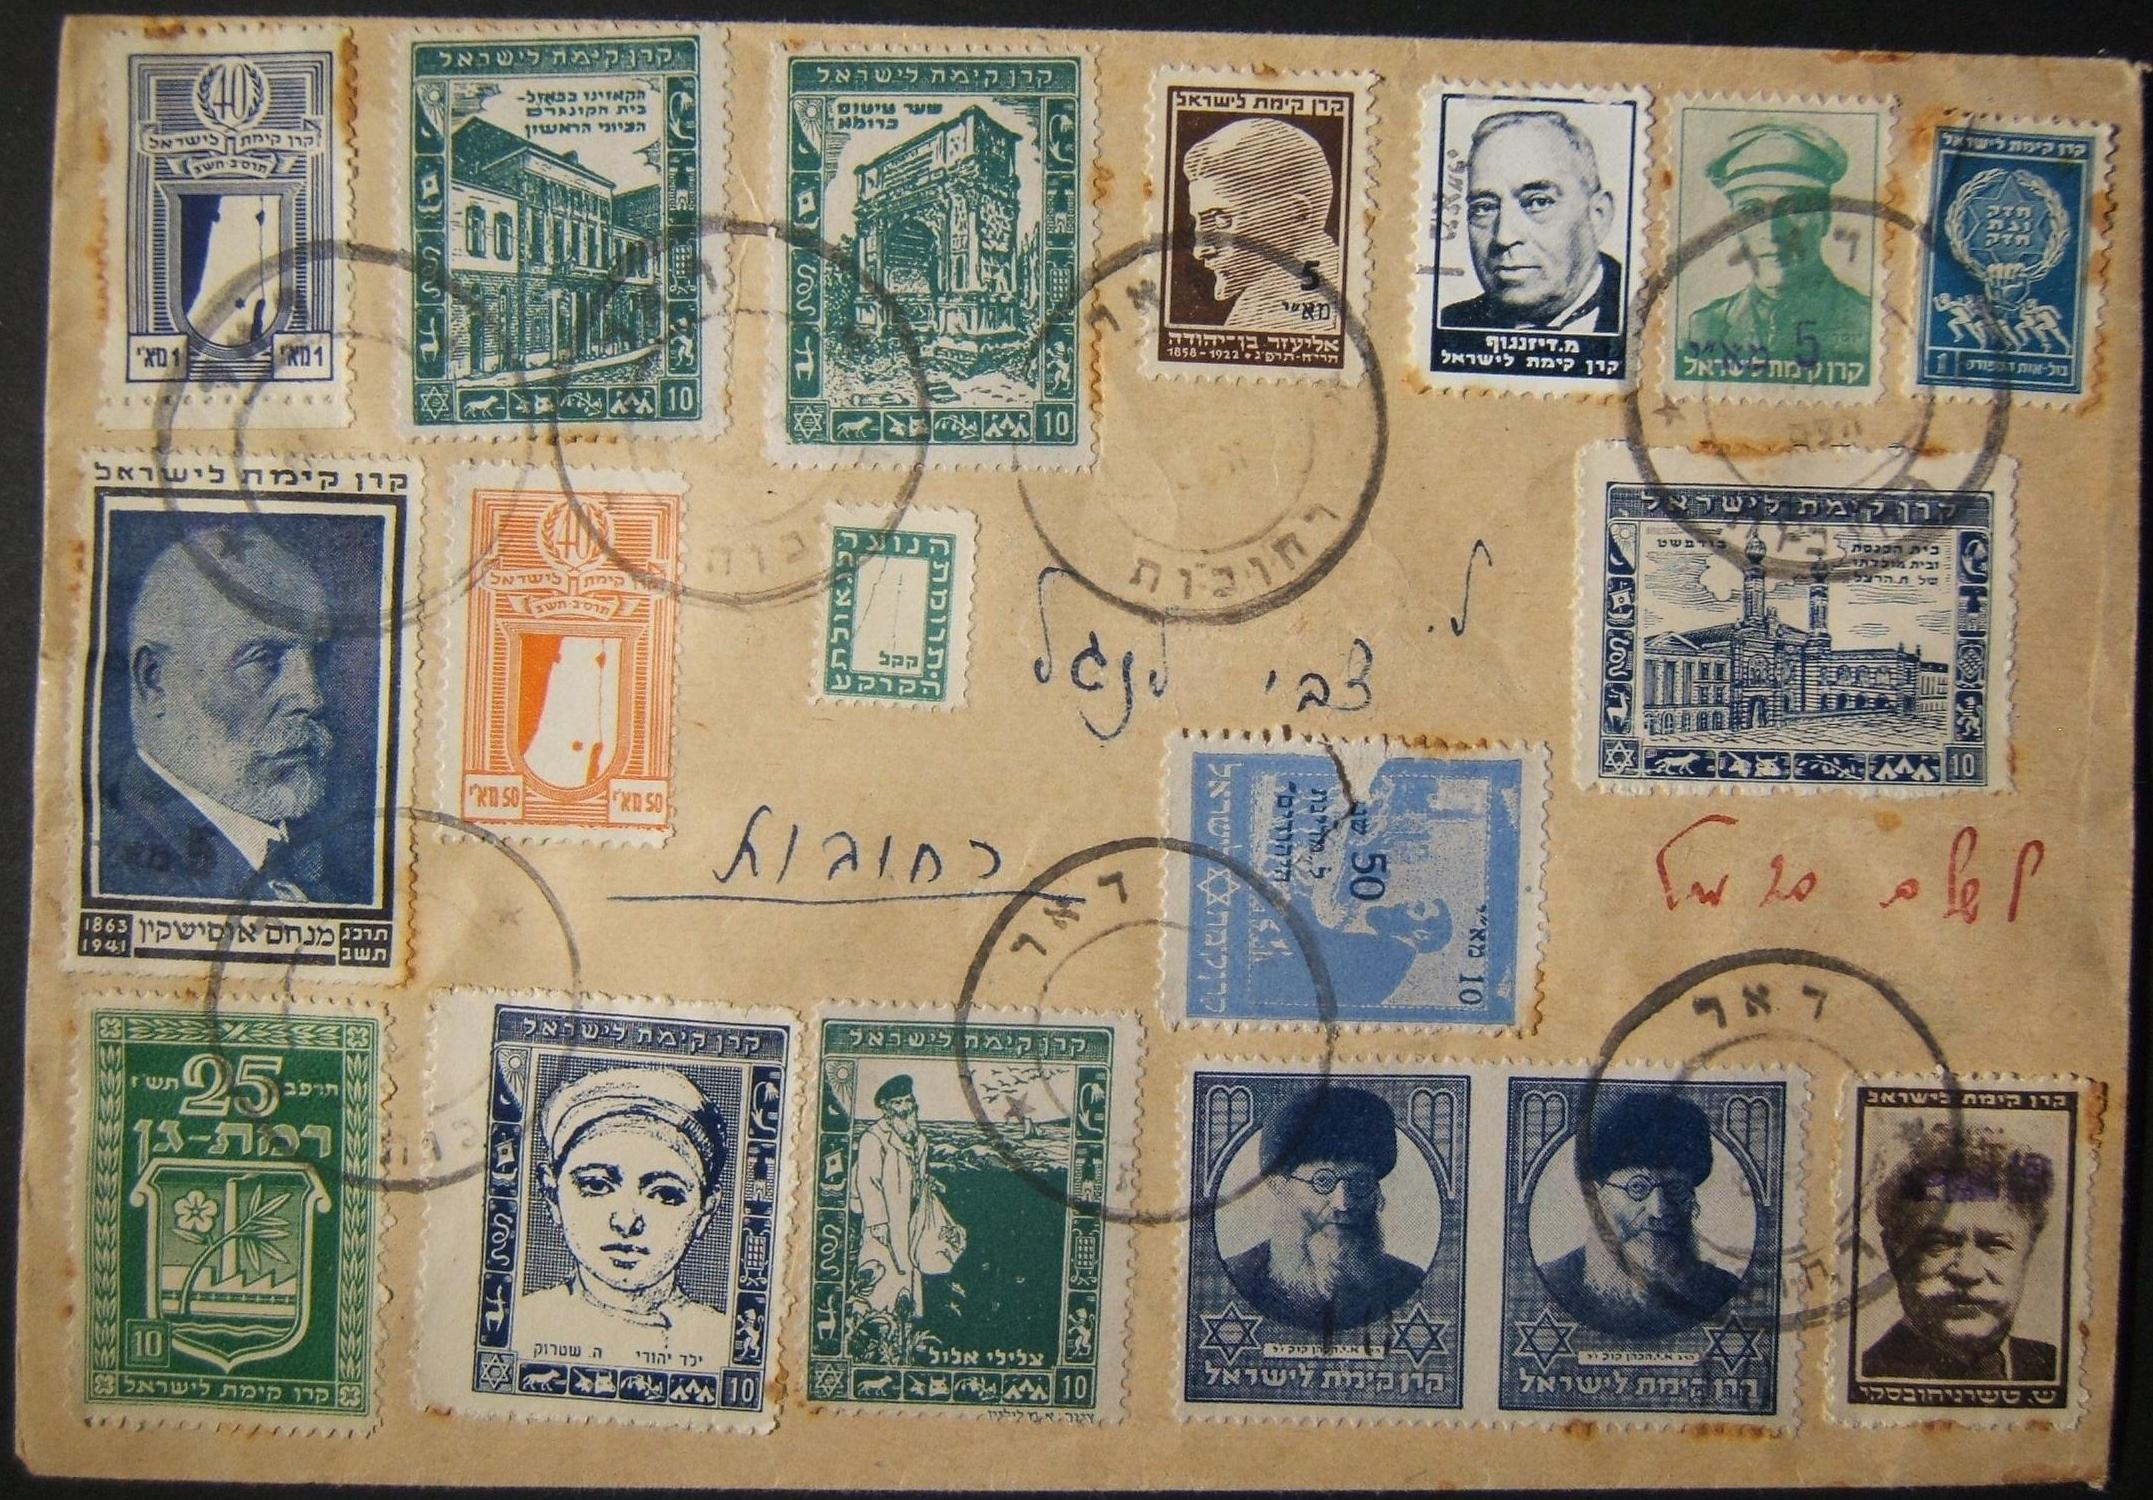 1948 interim period taxed mail: local REHOVOT philatelically inspired cover franked by unsanctioned JNF labels (not ovpt'd by